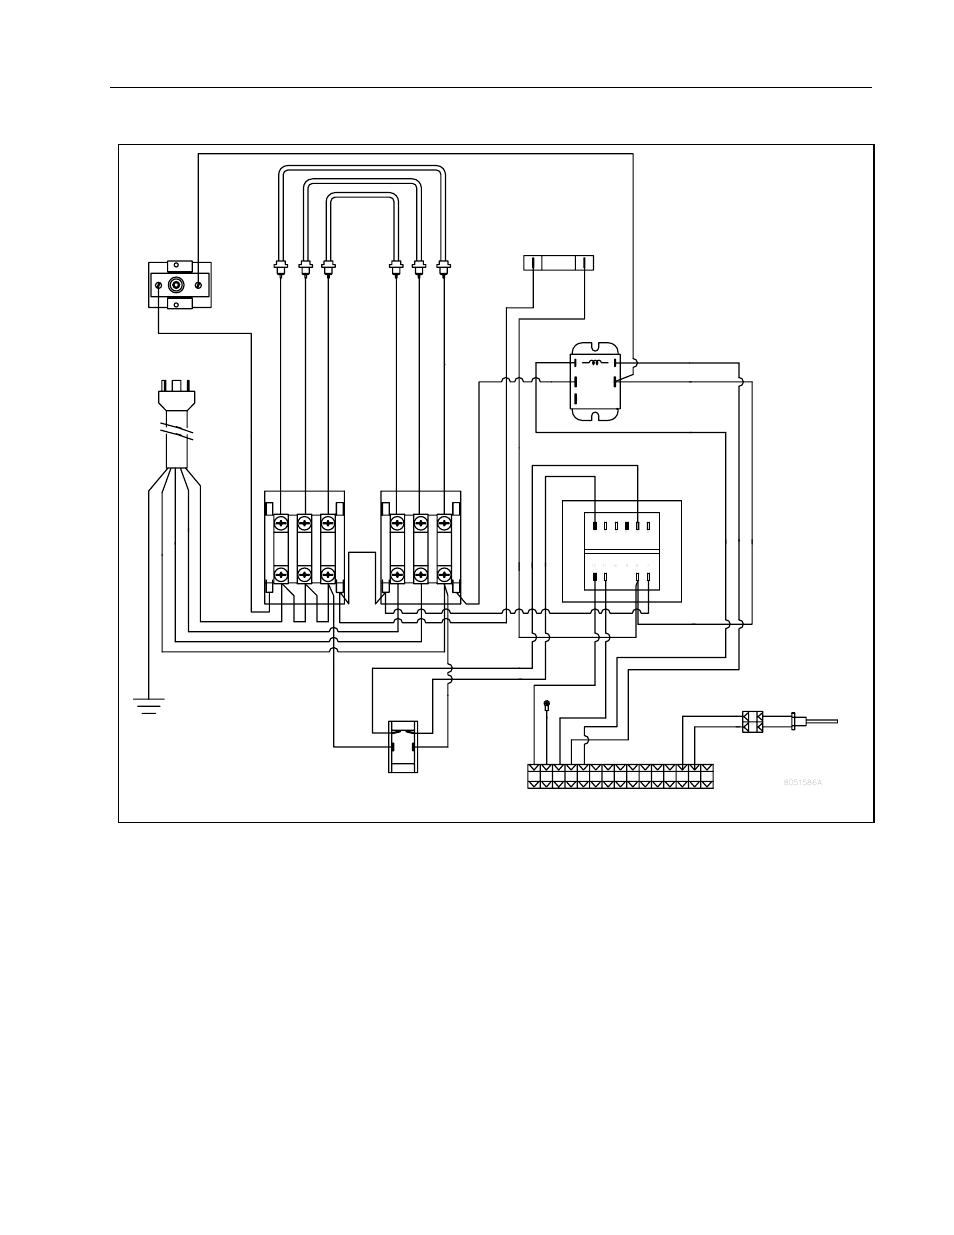 hight resolution of 3 wiring diagram 3 phase wye frymaster dean sr114e user manual page 10